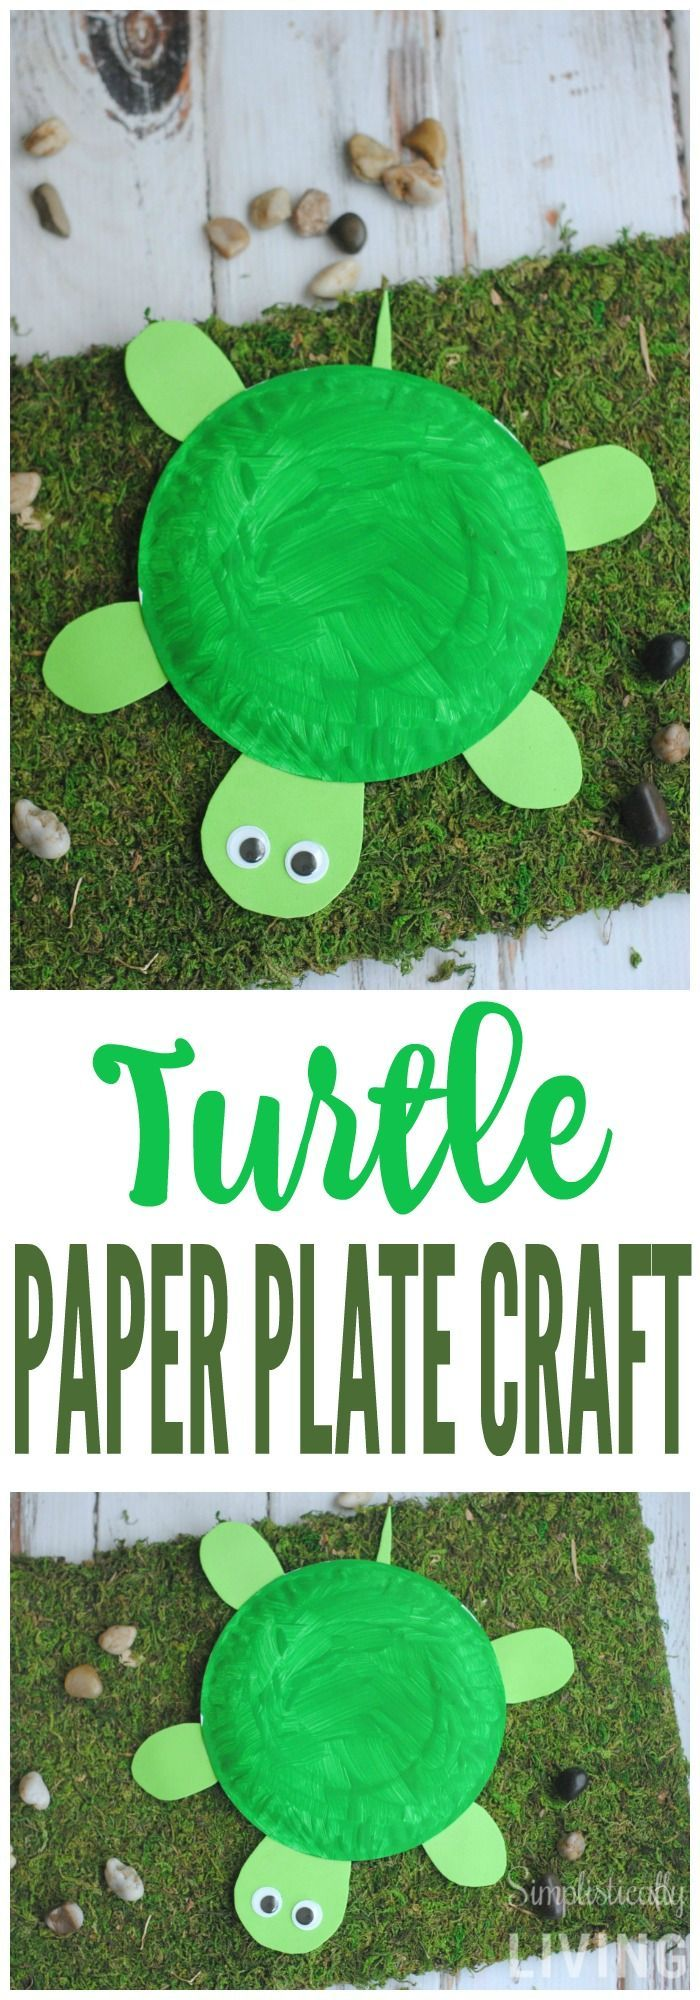 diy turtle paper plate turtle craft and paper plate crafts